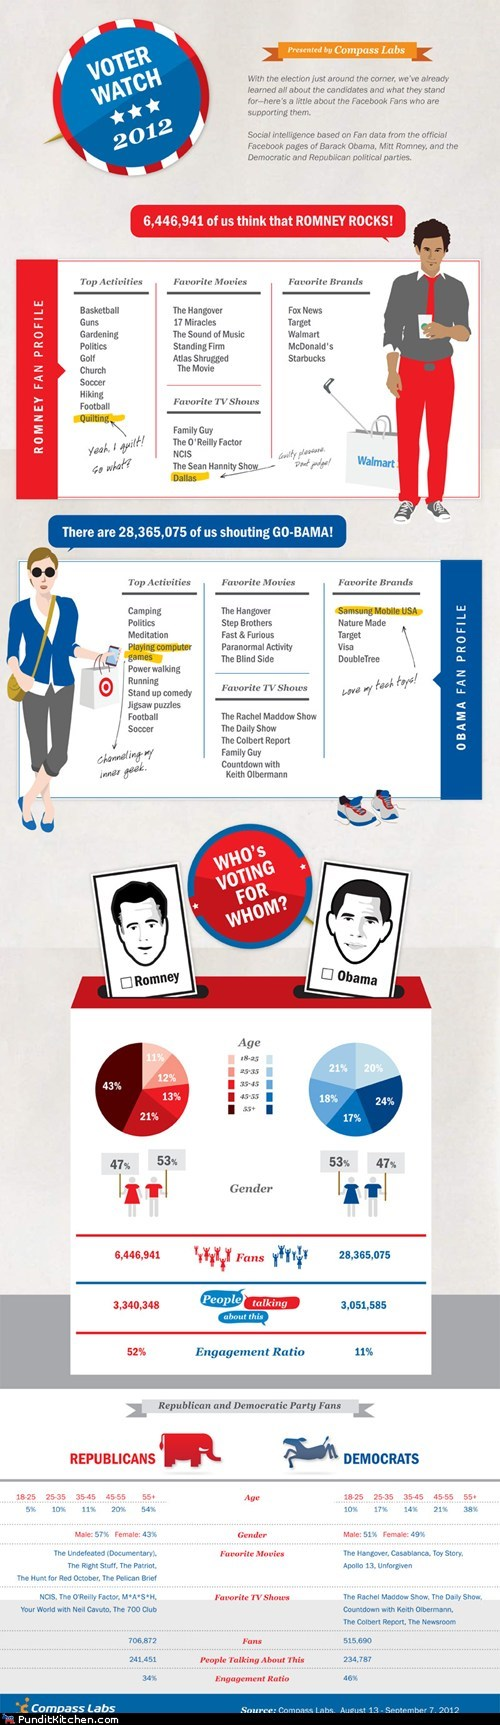 barack obama facebook fan pages infographic interests likes Mitt Romney